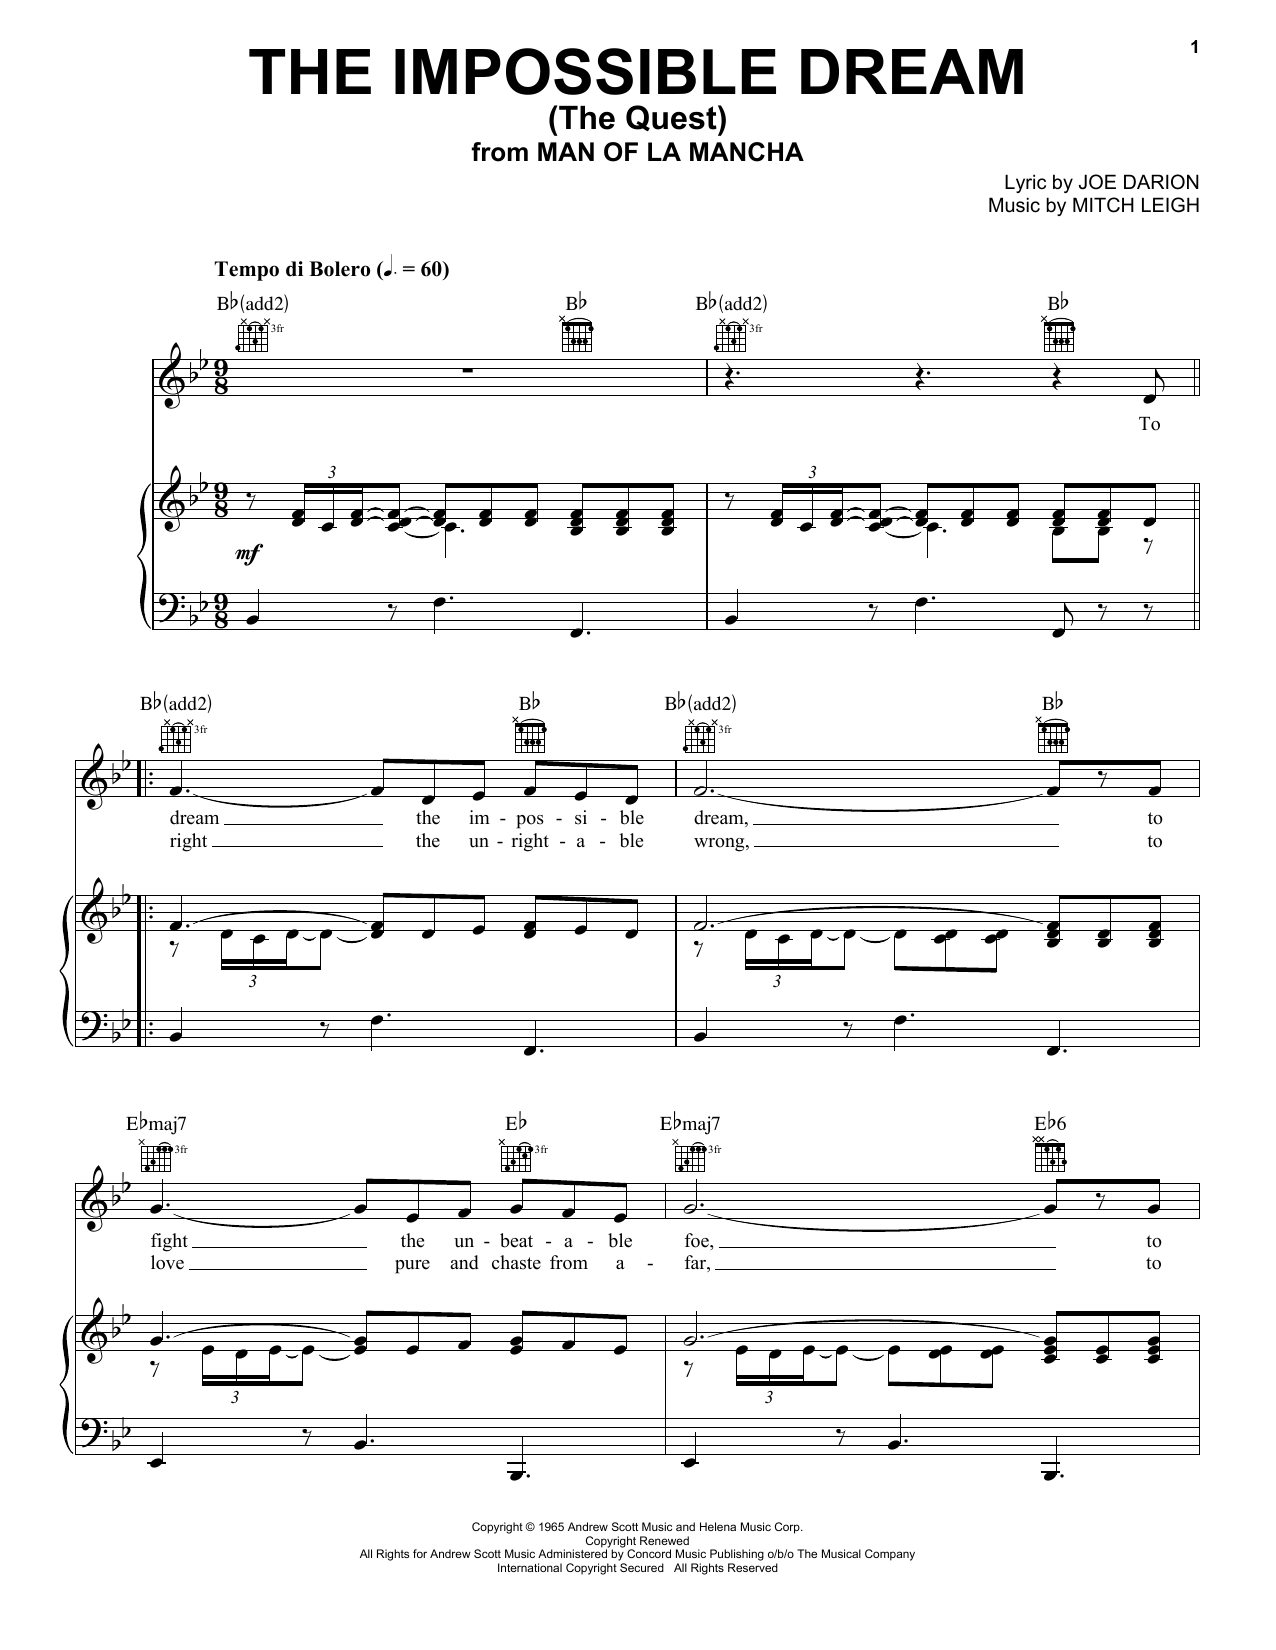 Joe Darion The Impossible Dream (The Quest) sheet music notes and chords. Download Printable PDF.